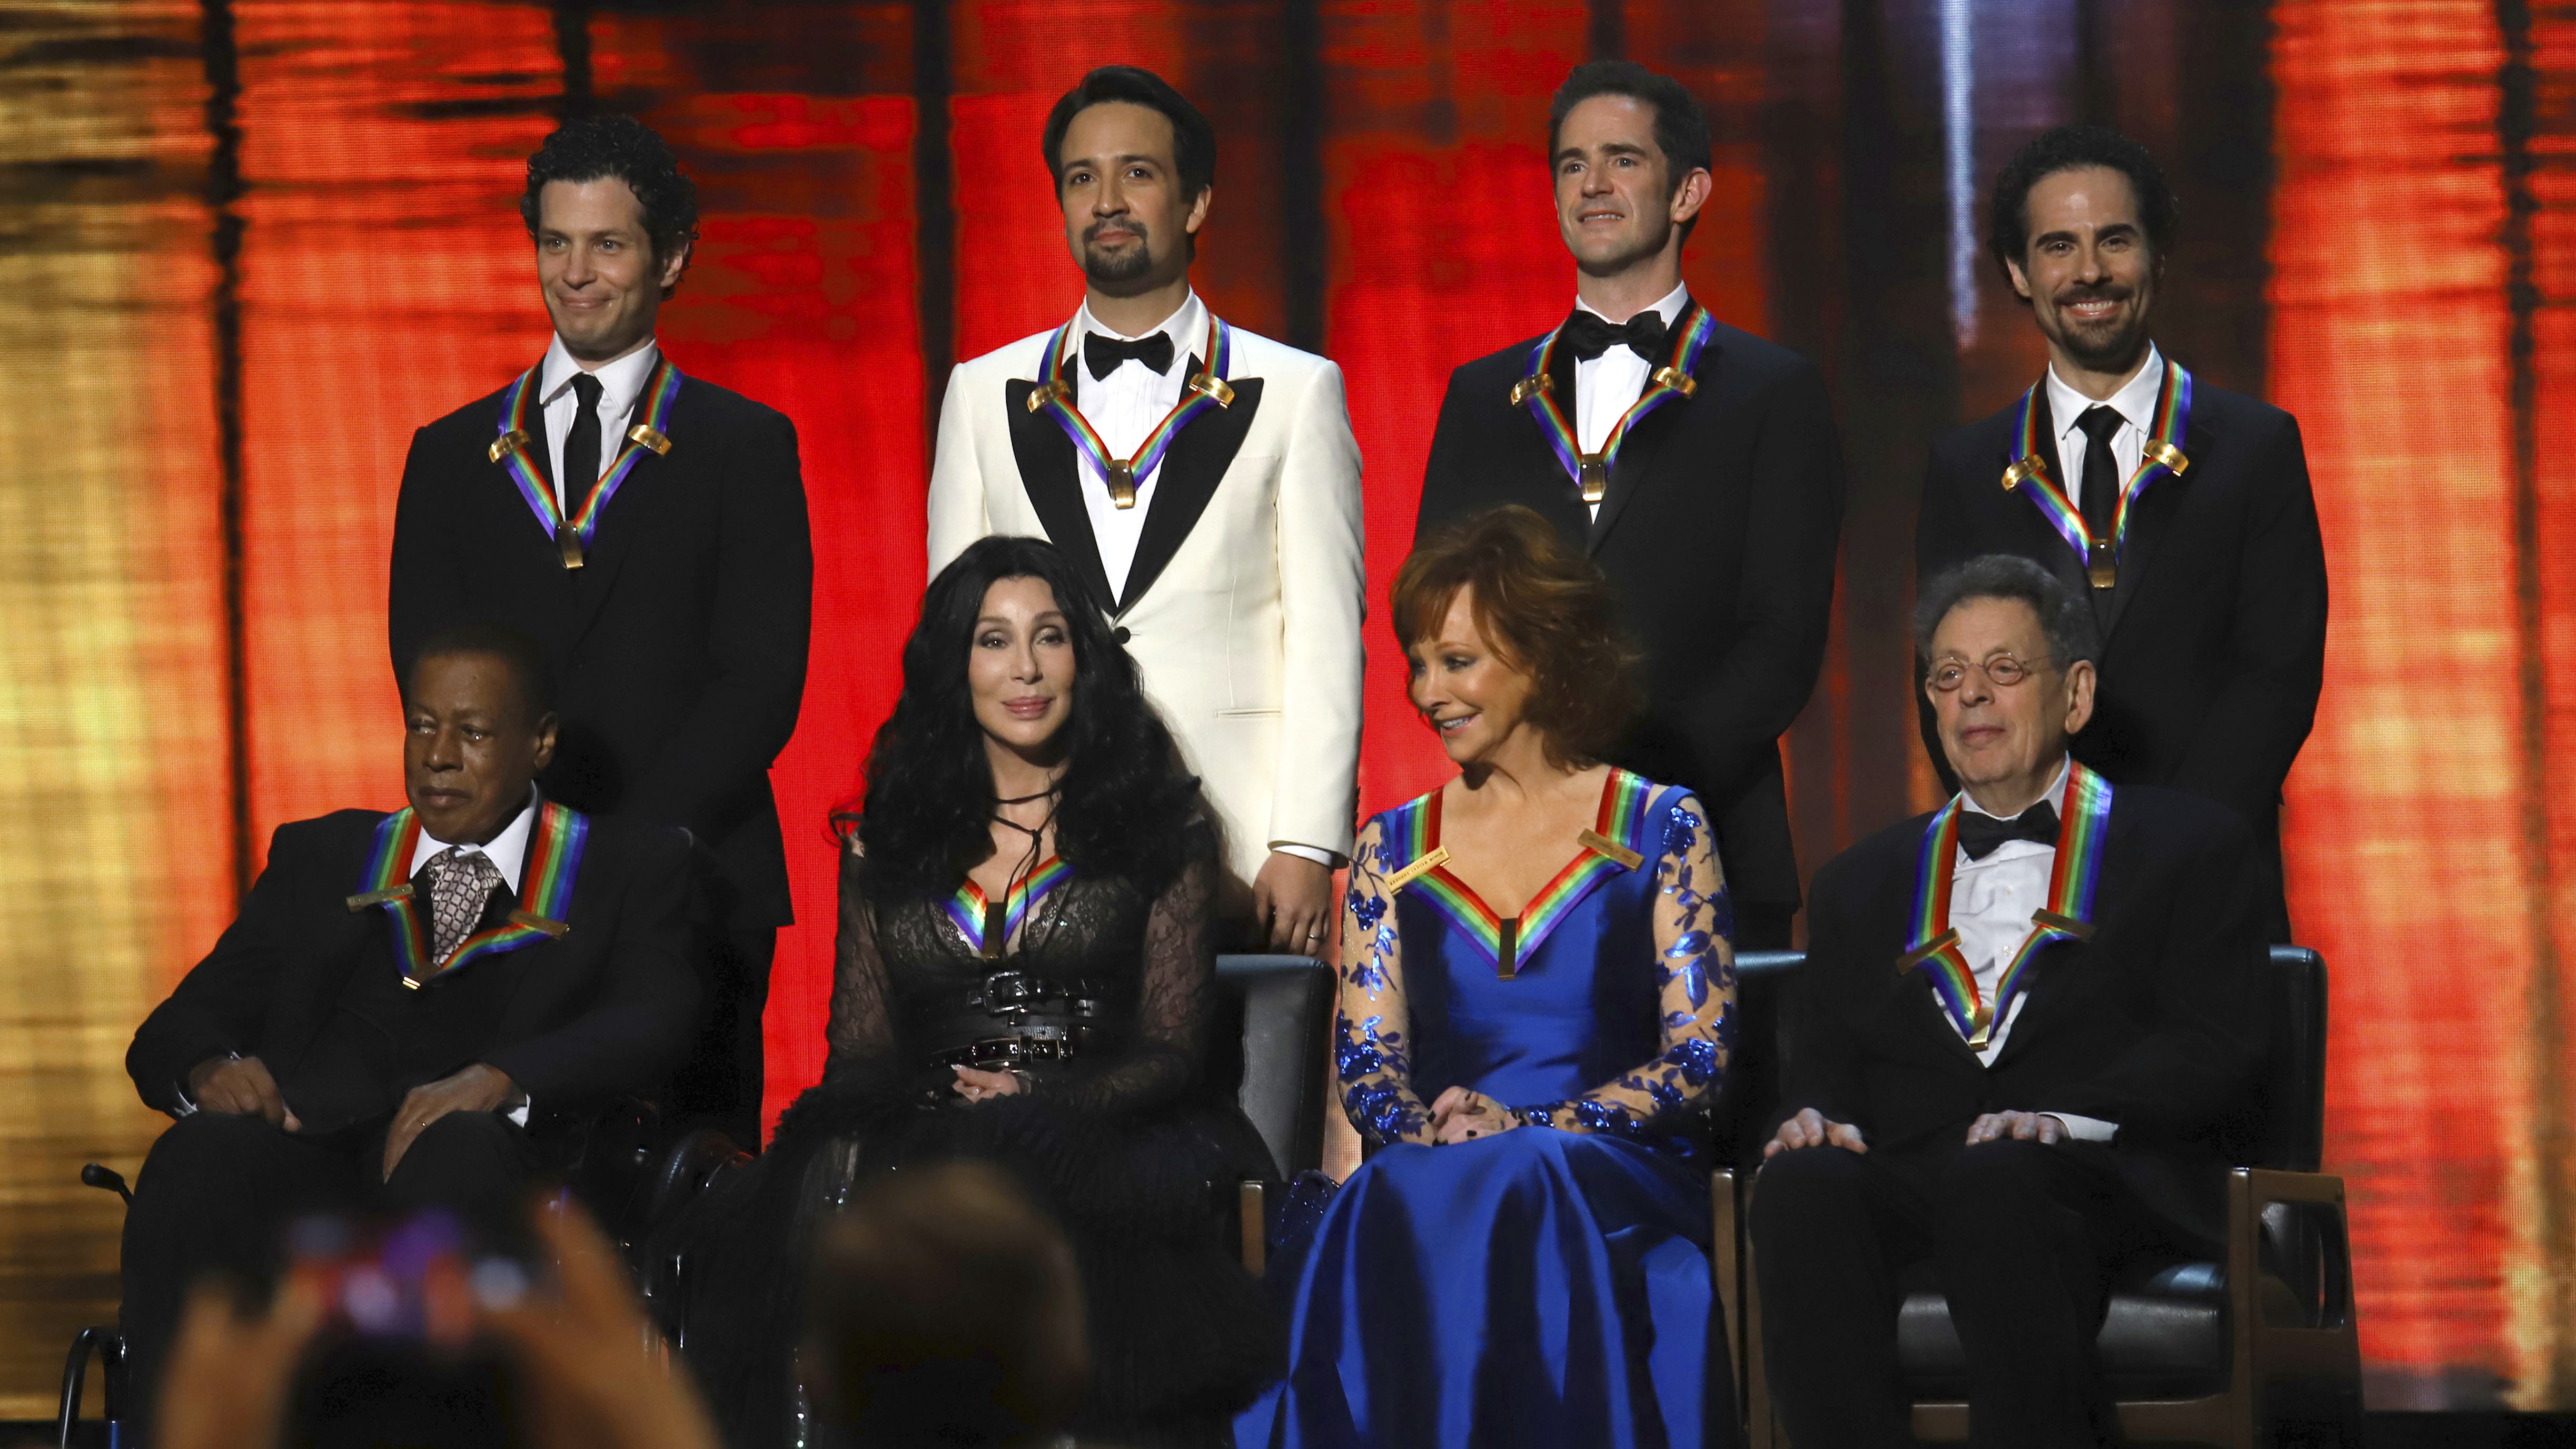 Kennedy Center Honors Program Opens With Applause For Bush